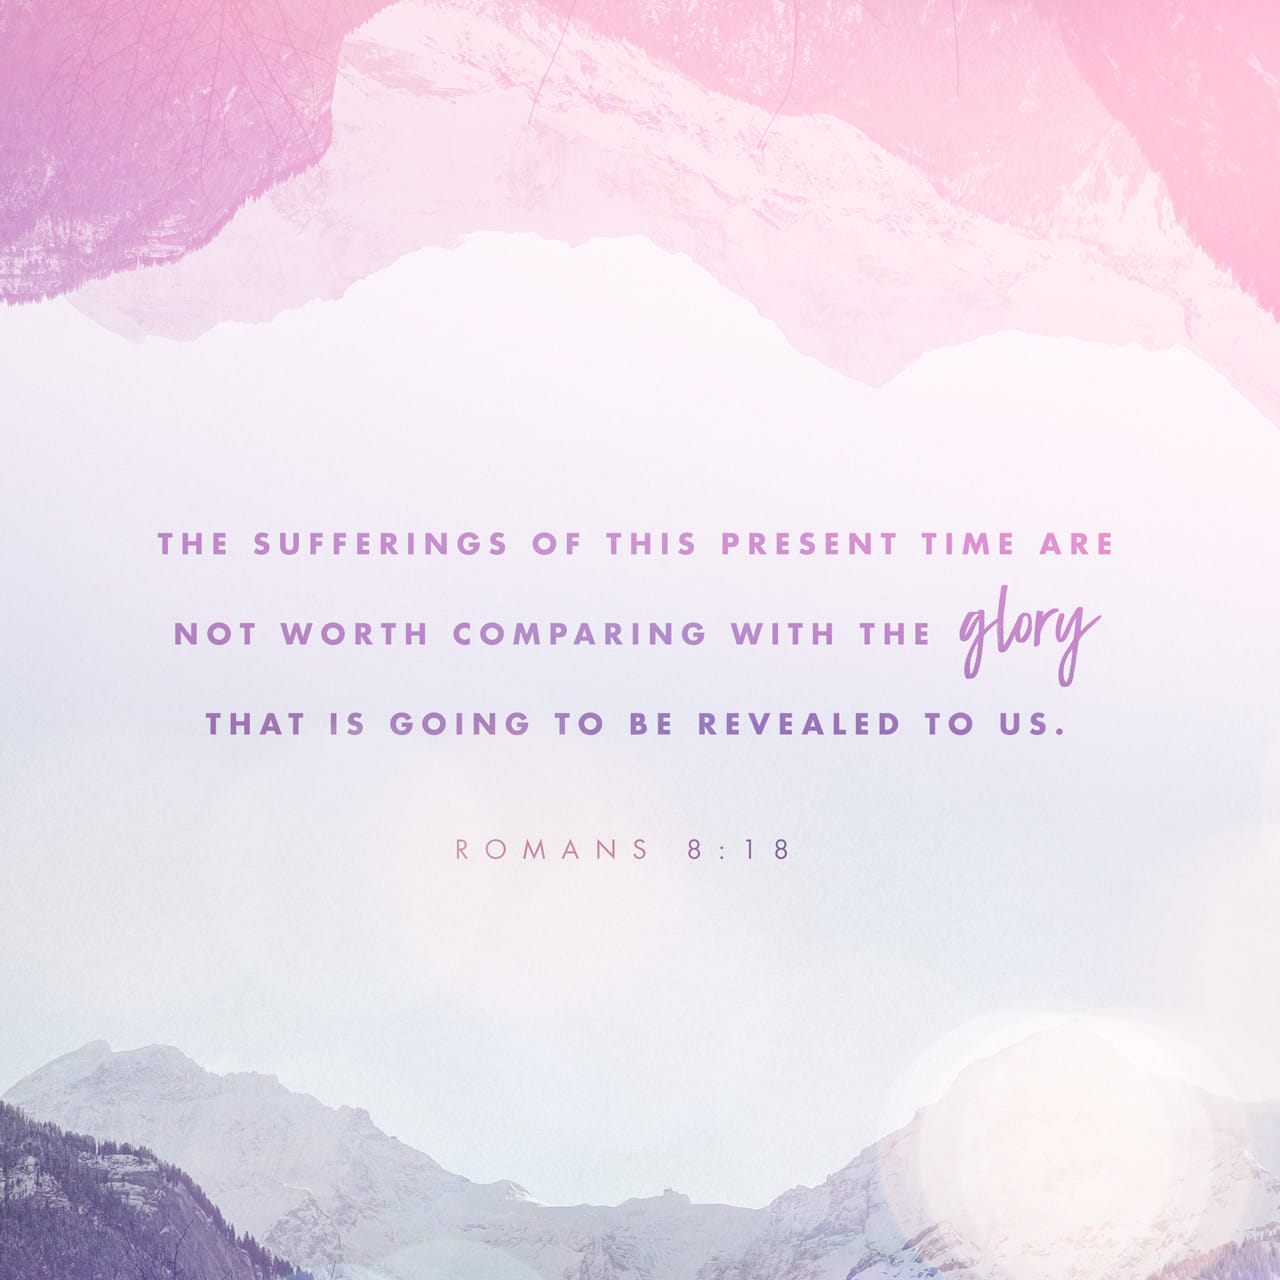 Romans 8:18 For I reckon that the sufferings of this present time are not worthy to be compared with the glory which shall be revealed in us. | King James Version (KJV)